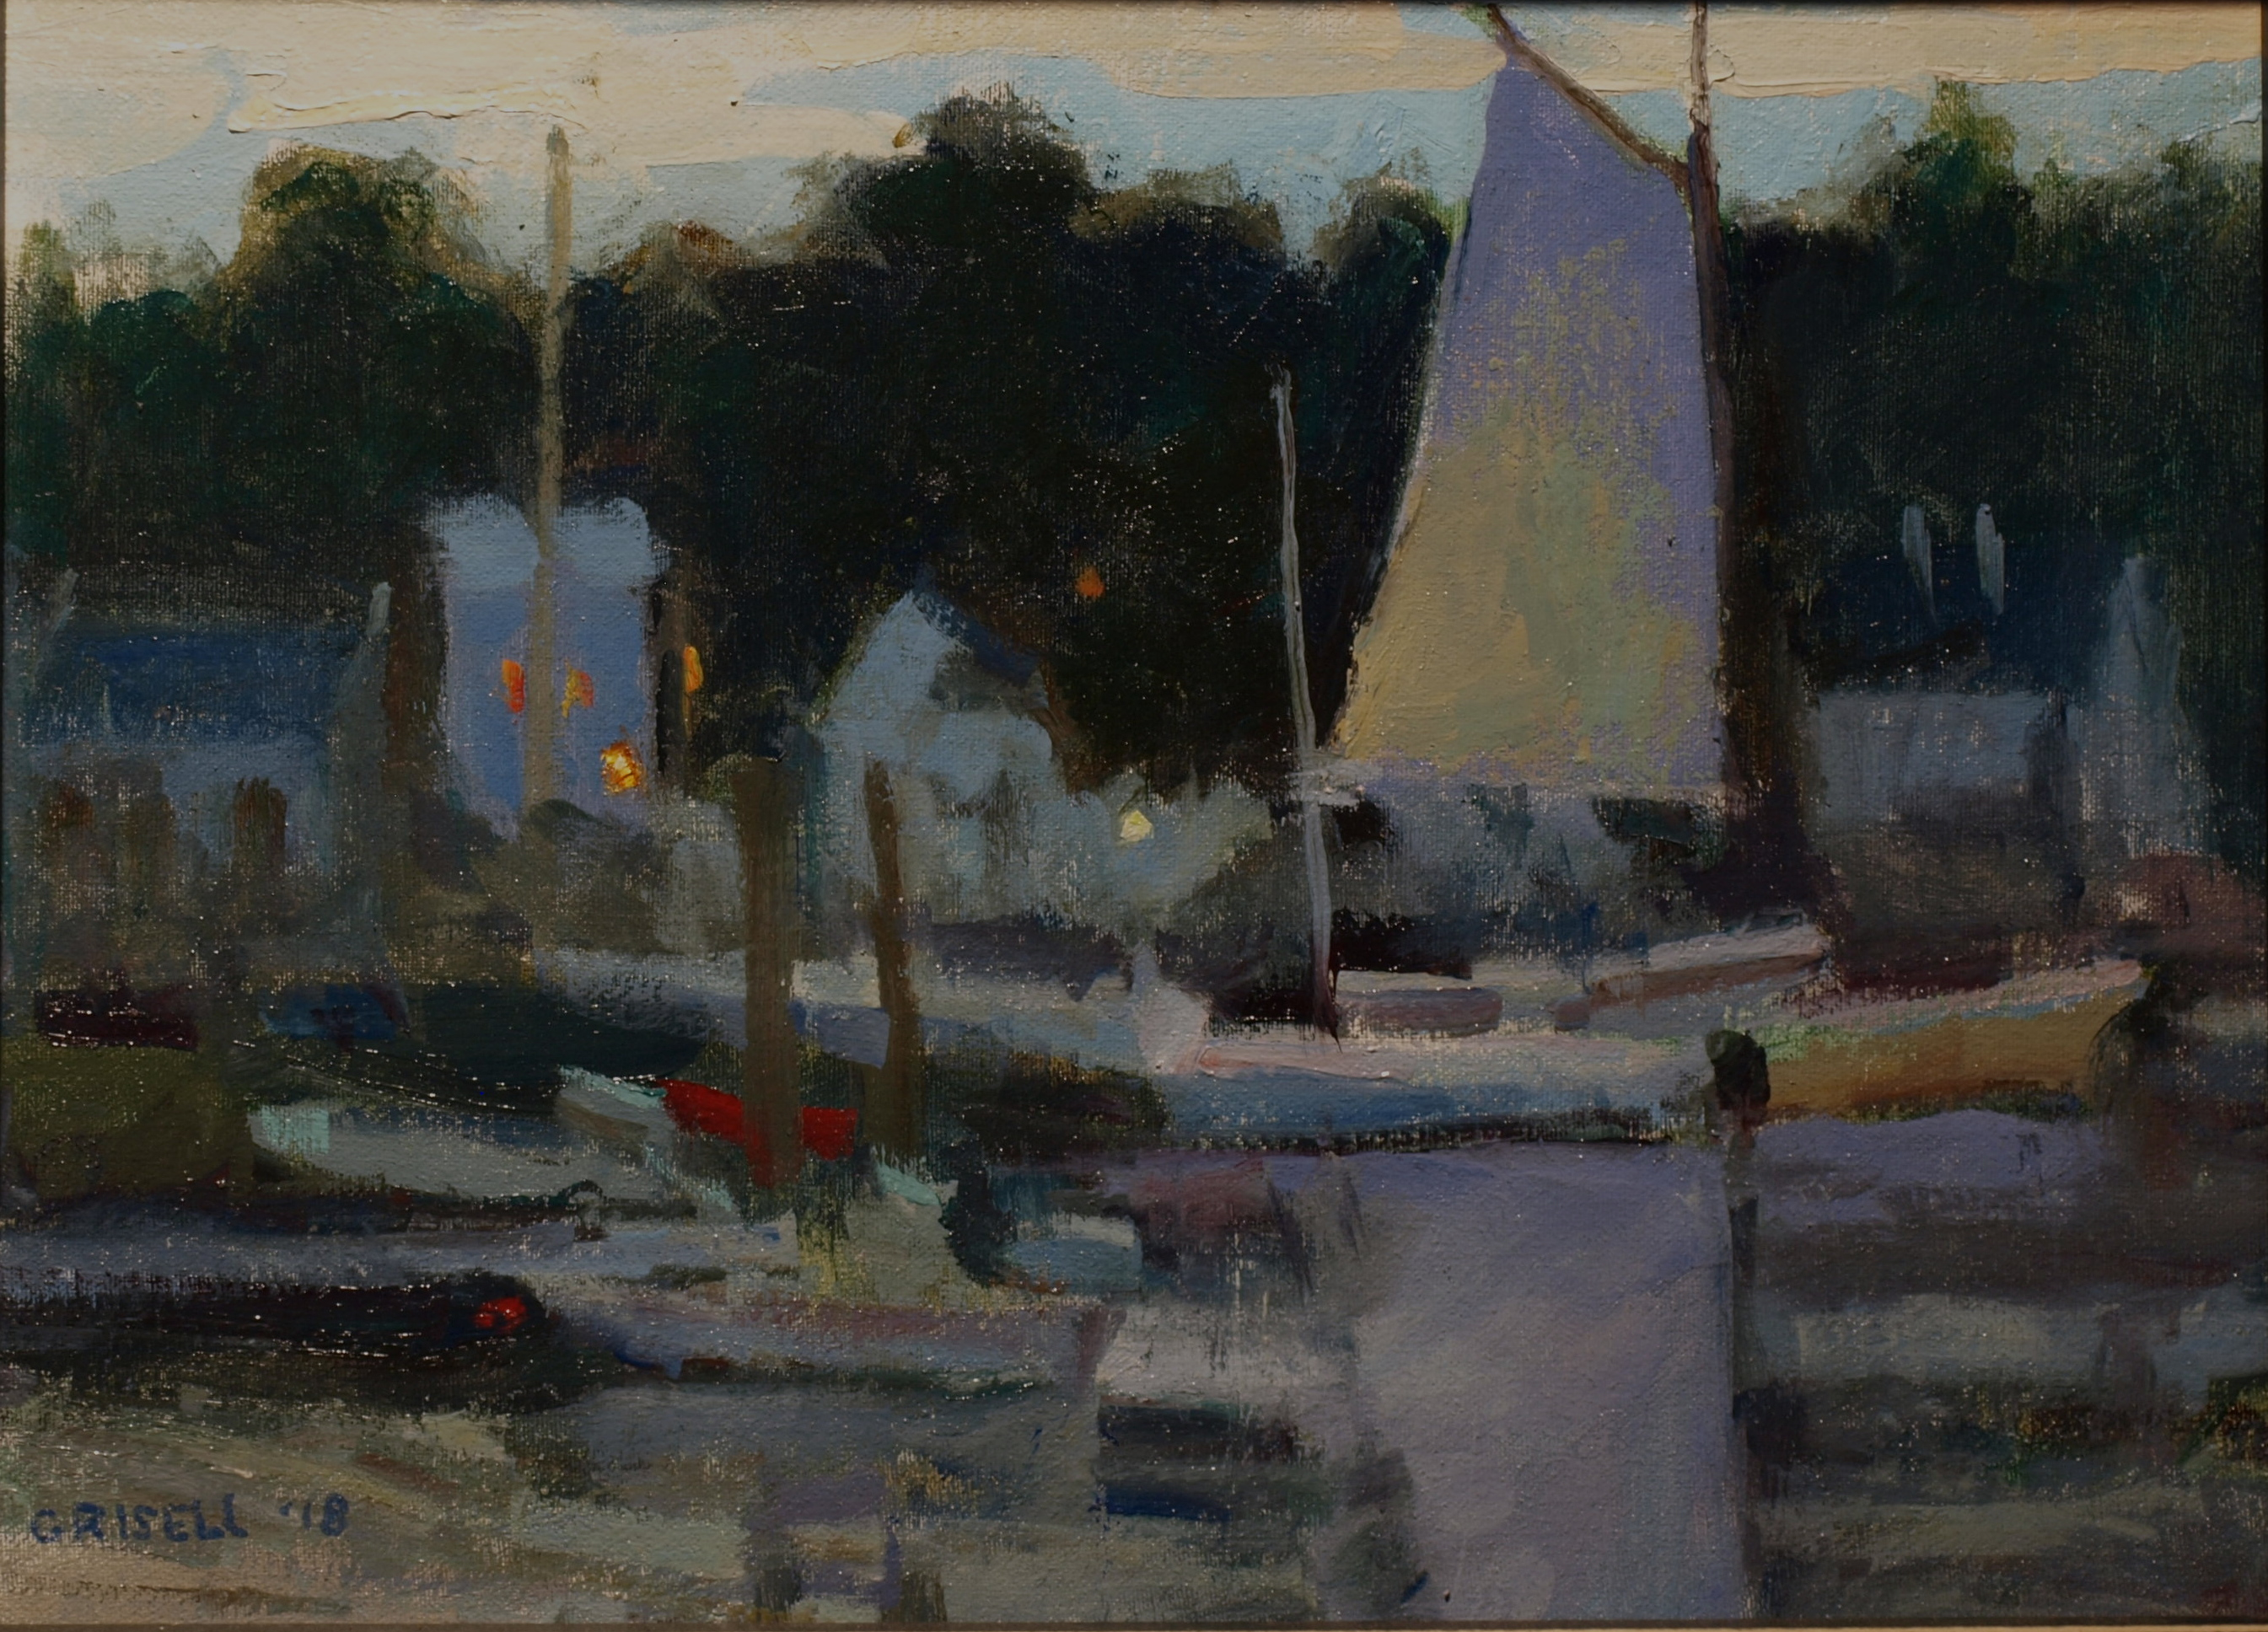 Sailboat at Dusk, Oil on Canvas on Panel, 12 x 16 Inches, by Susan Grisell, $300